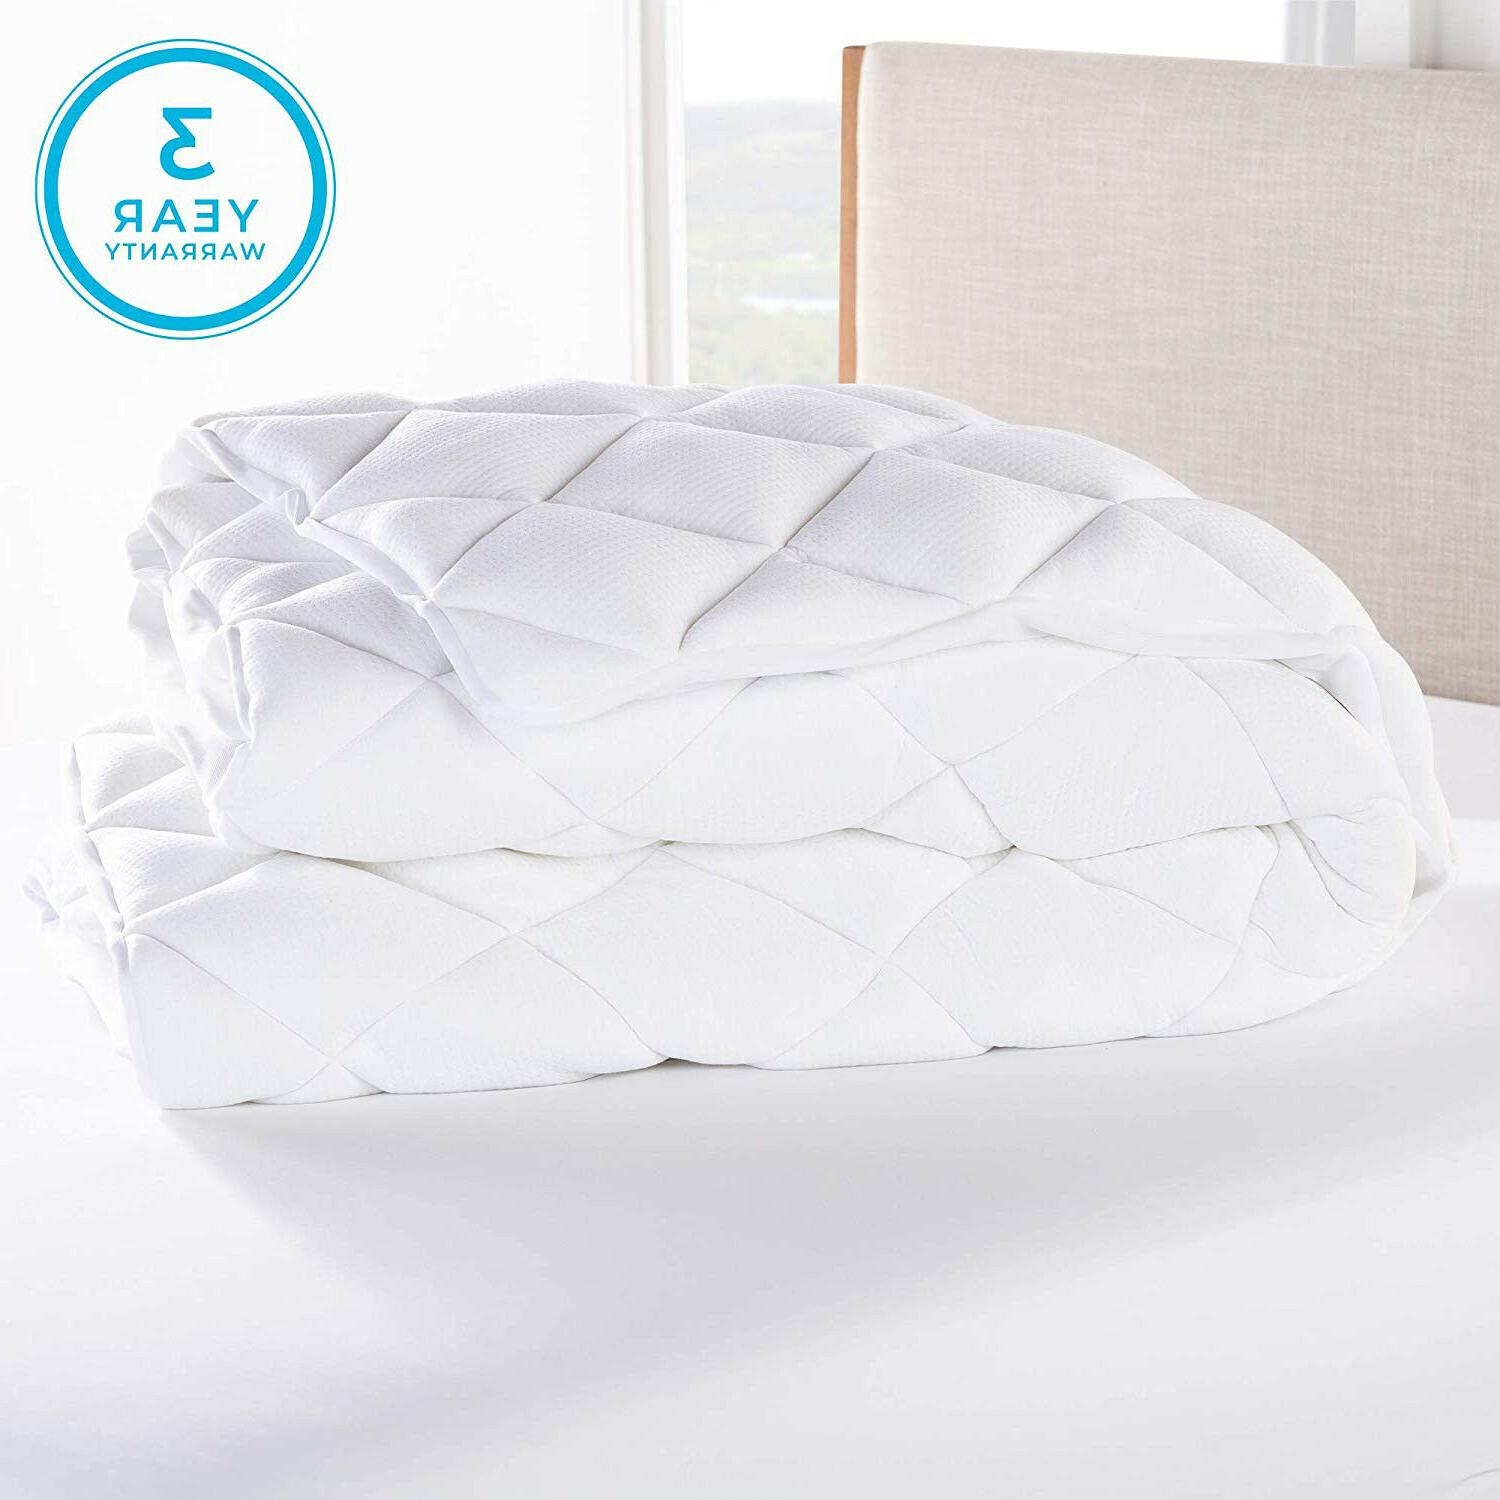 Cooling Matress Pad Bamboo Down Mattress Topper